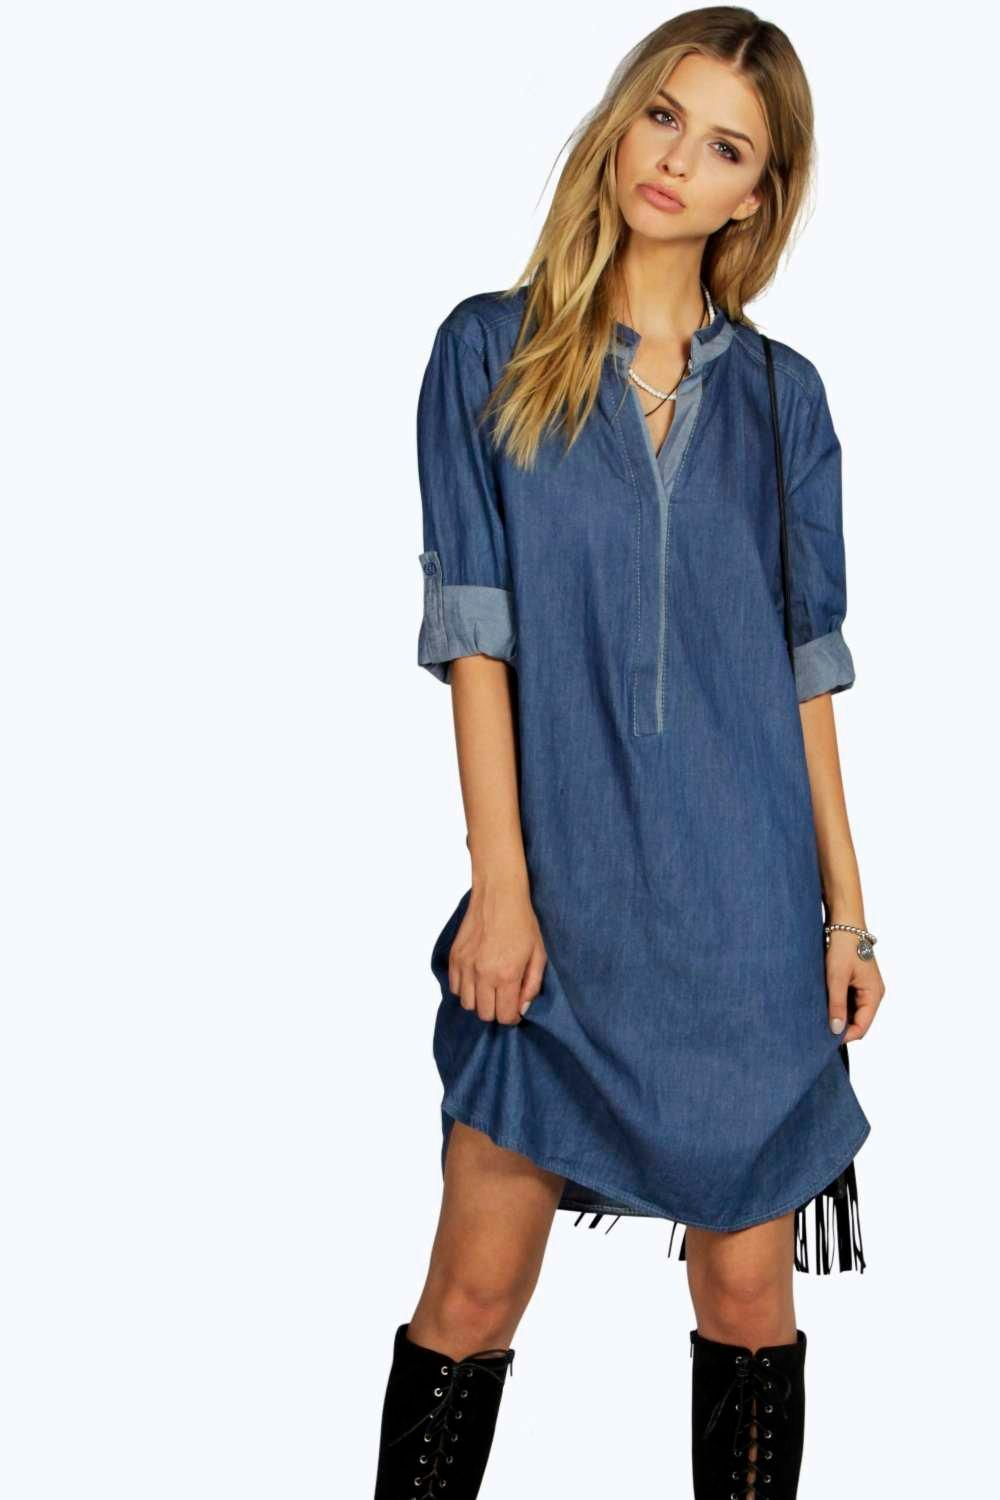 boohoo Maria Tunic Style Denim Shirt Dress - mid blue